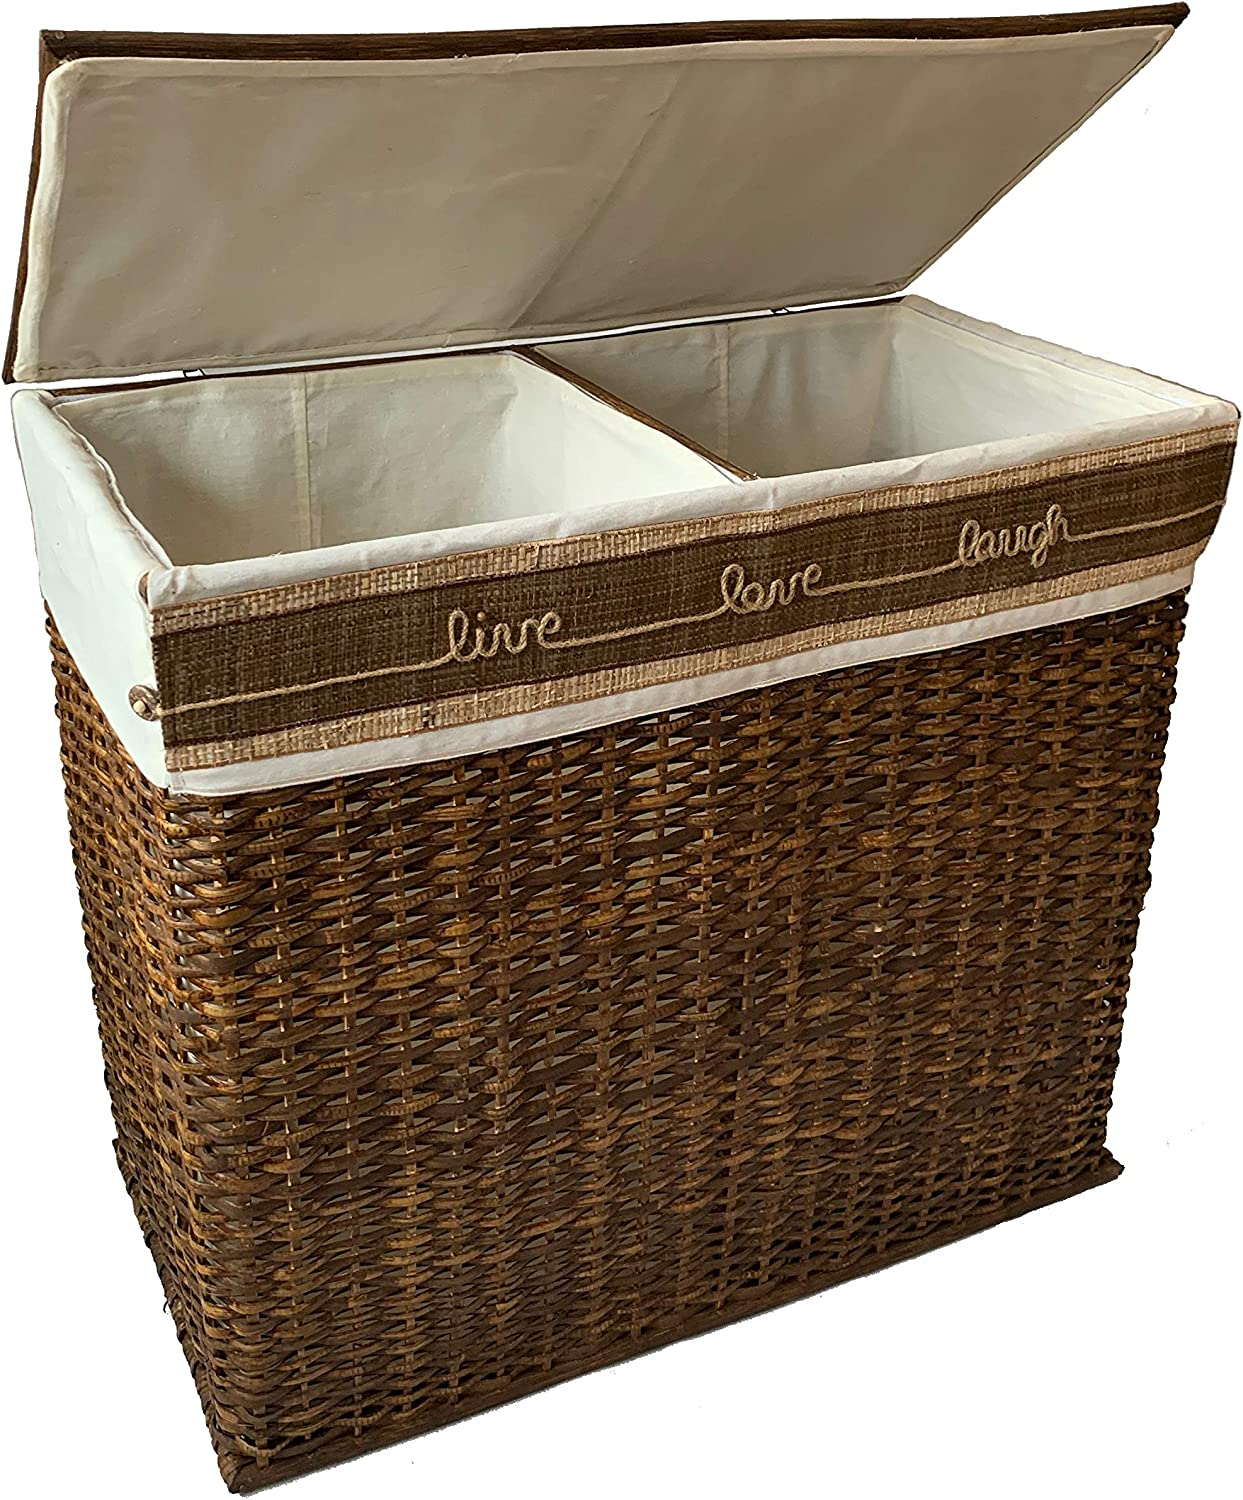 Handcrafted Wicker Oversized 2 Compartment Section Divided Laundry Hamper Sorter Organizer Handwoven Natural Rattan Basket with Lid, Cloth Liner, Coconut Button, Jute Rope Design, Raffia Weave Accent